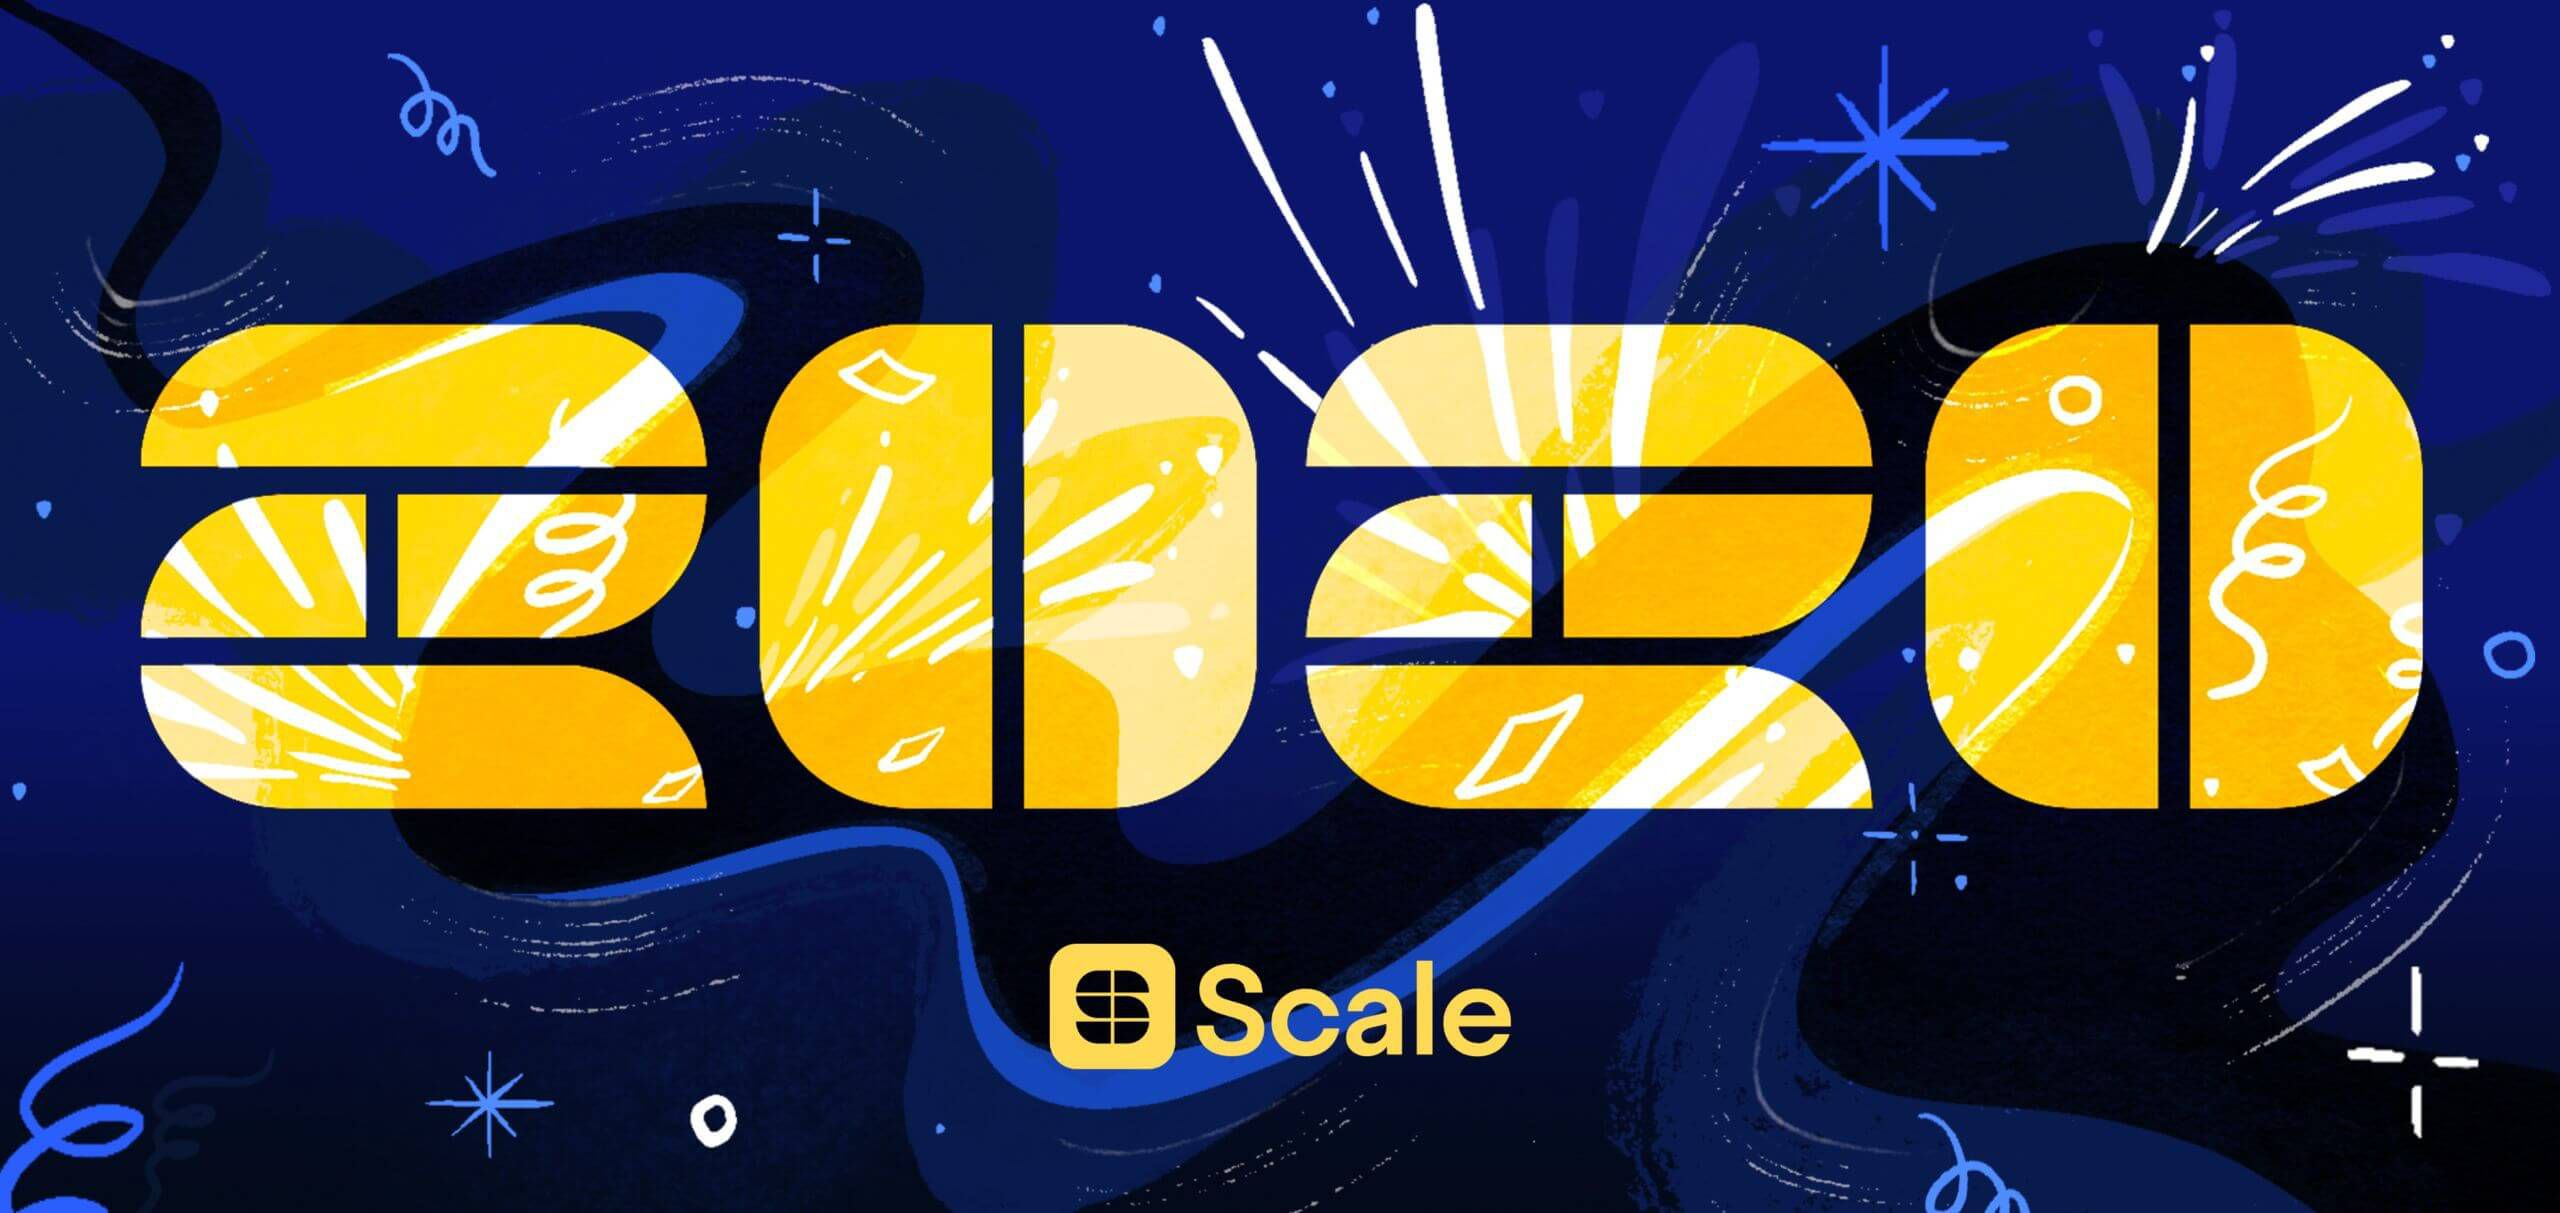 What we learned from Scale in 2020